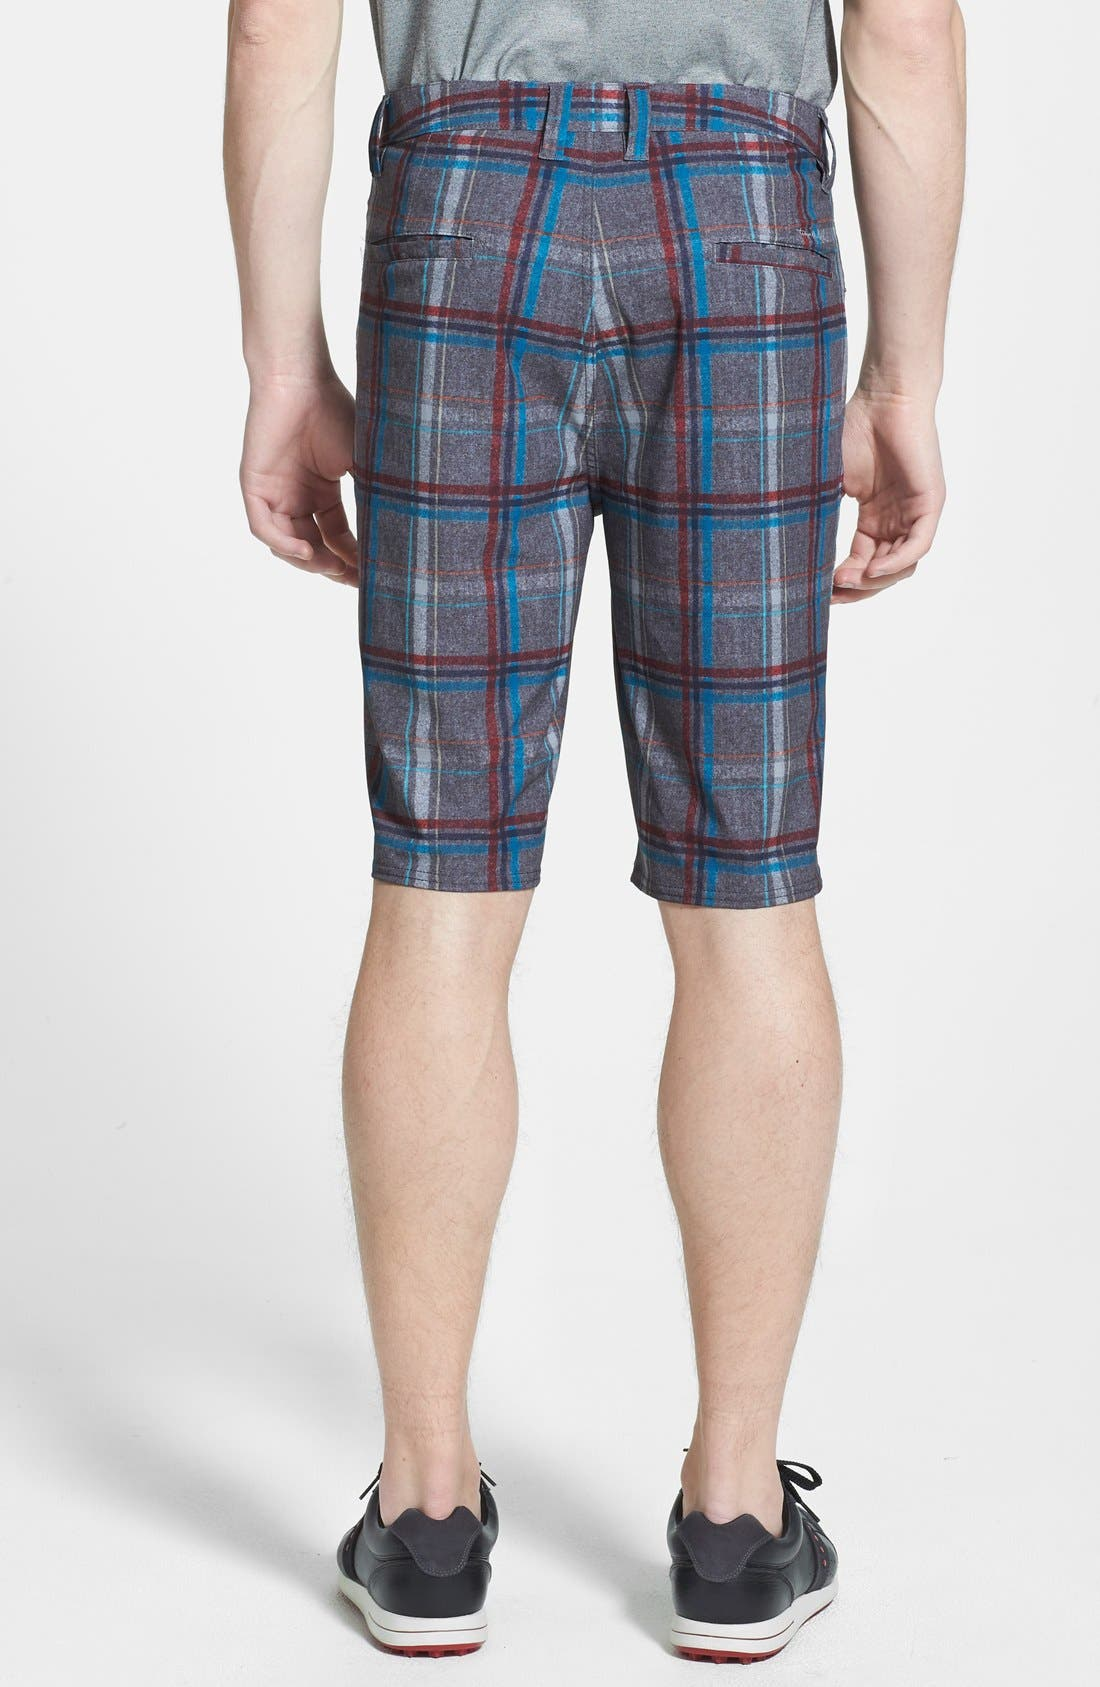 'Marsh' Performance Stretch Shorts,                             Alternate thumbnail 2, color,                             Grey/ Red/ Blue Plaid